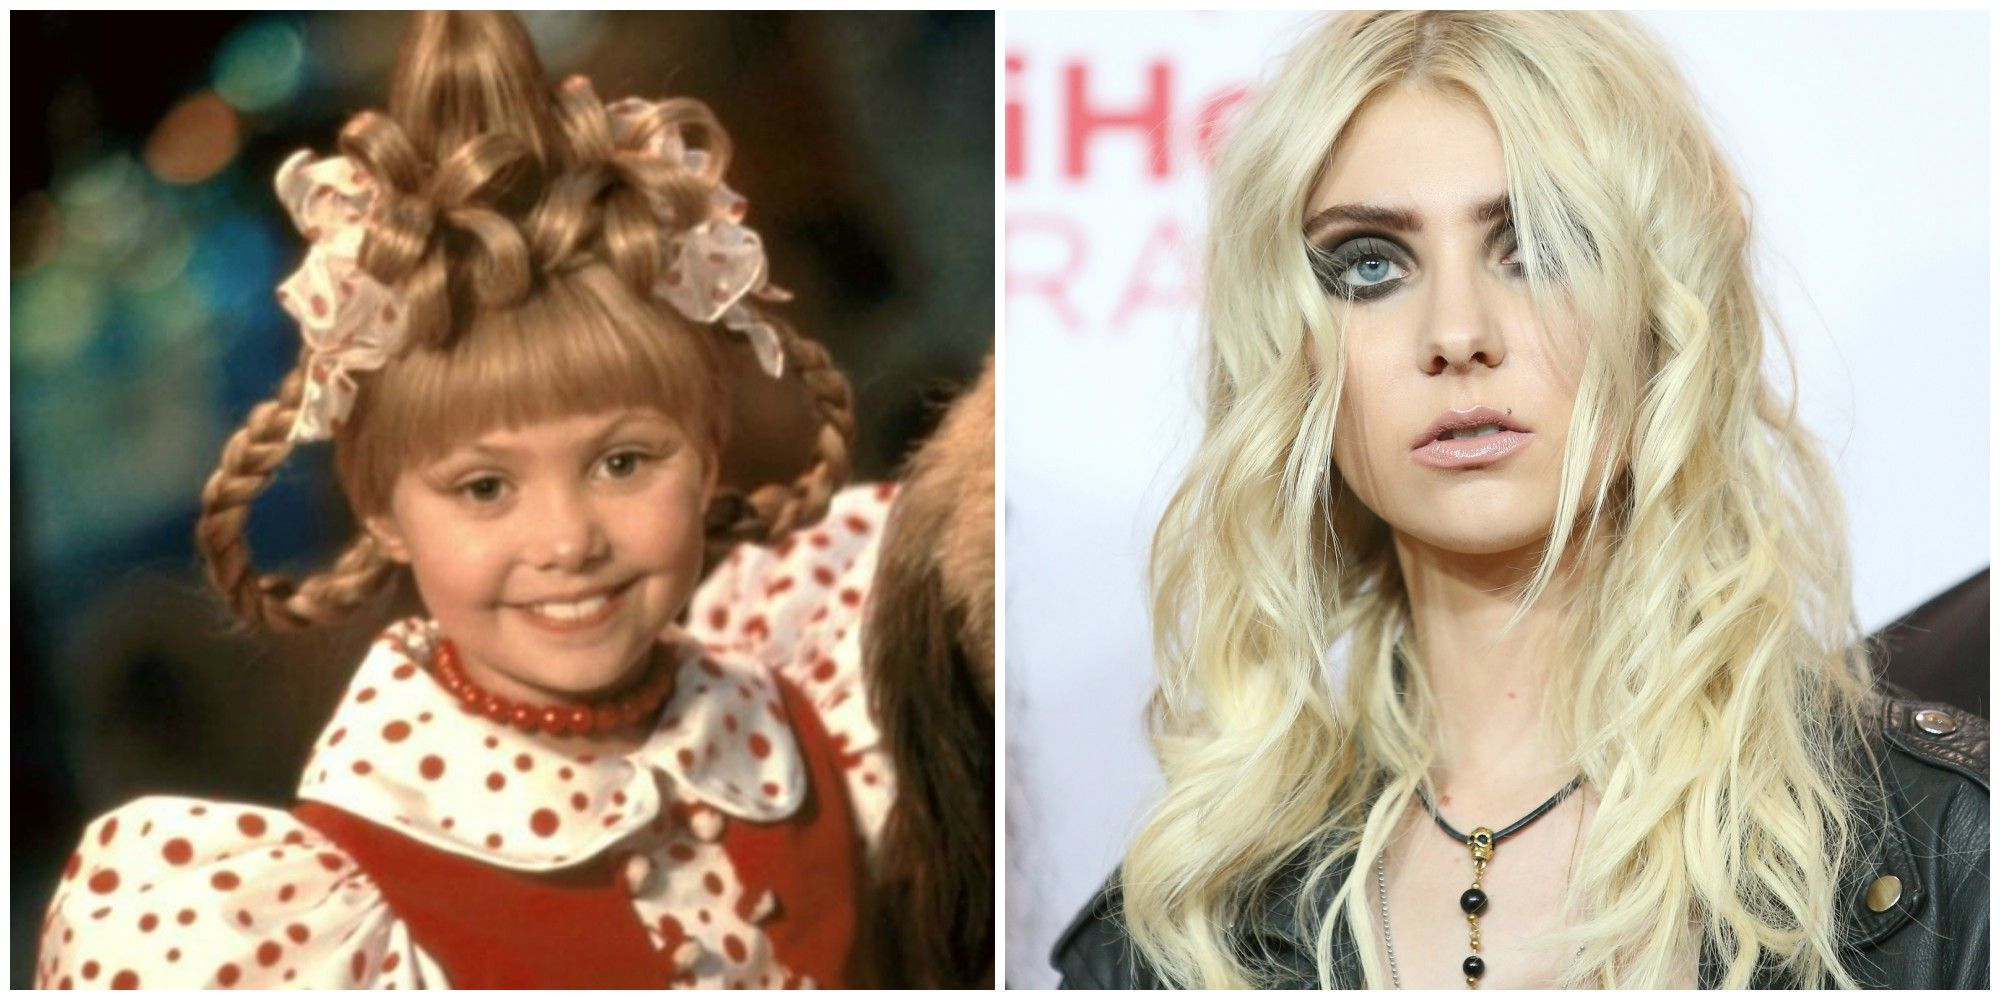 Christmas Movie Child Stars - Where Are They Now?